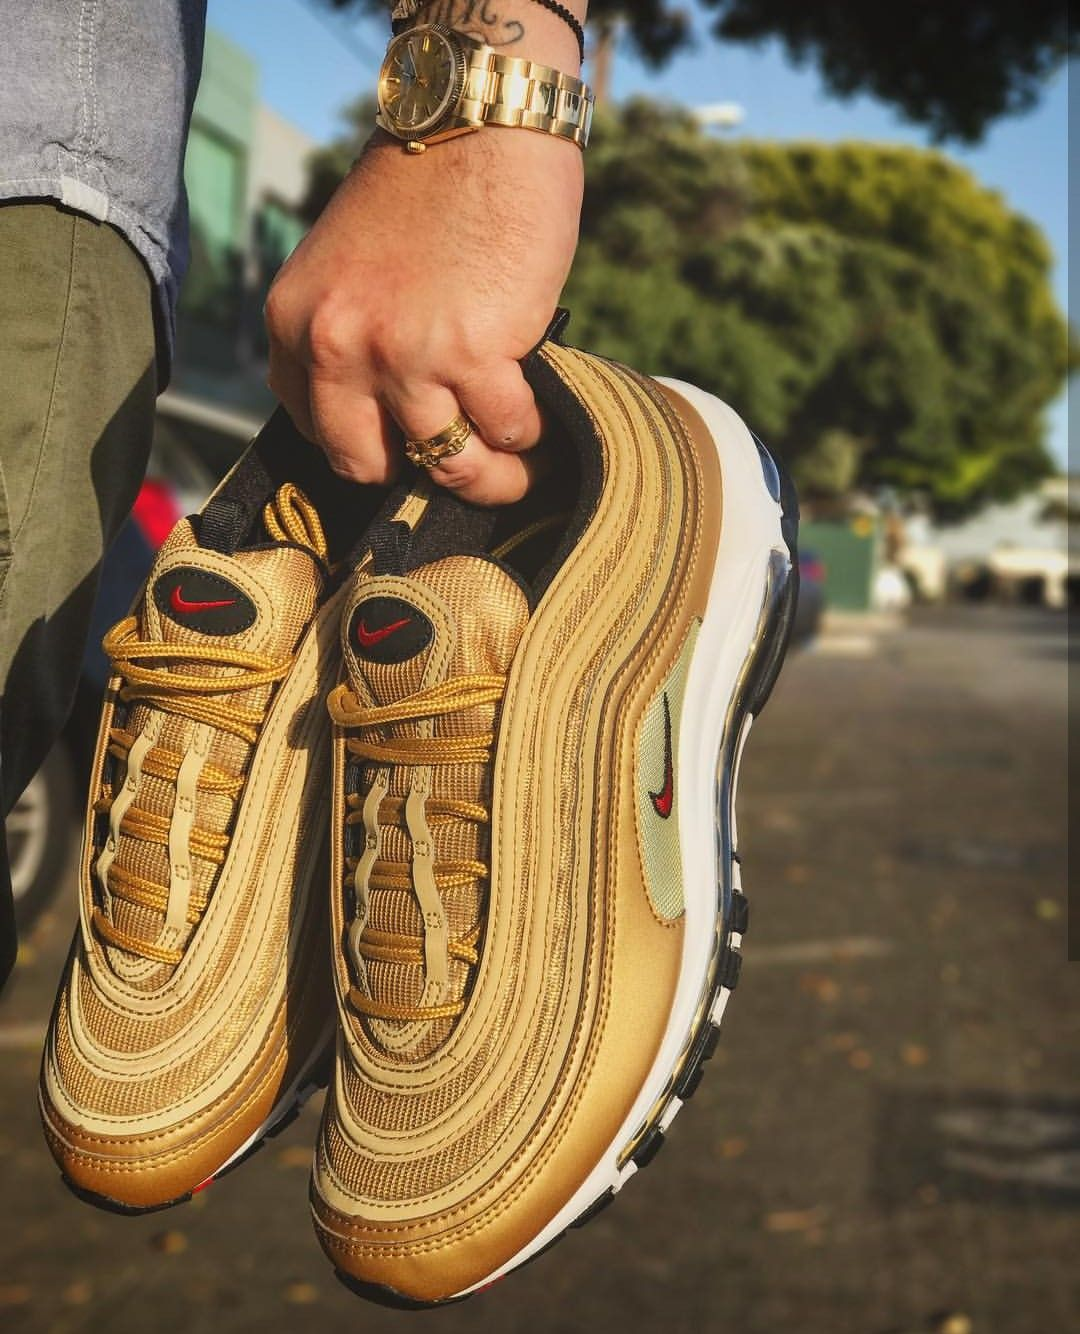 Nike Air Max 97 in gold red Foto: brucehatoo (Instagram